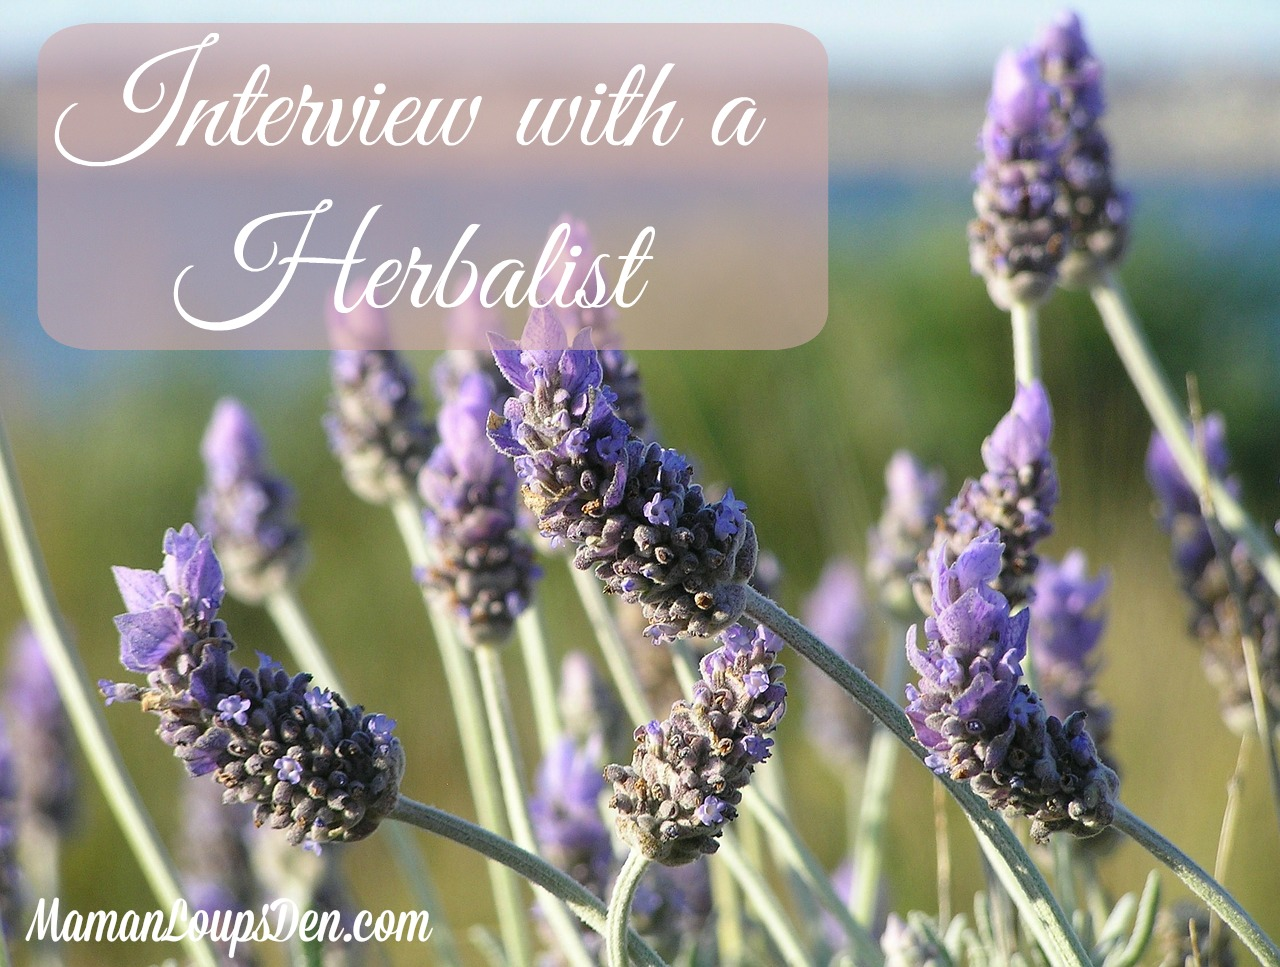 Interview with a Herbalist: Ever wondered what a makes someone a Herbalist? Meet Joanne from Honey Pot Herbals and find out!